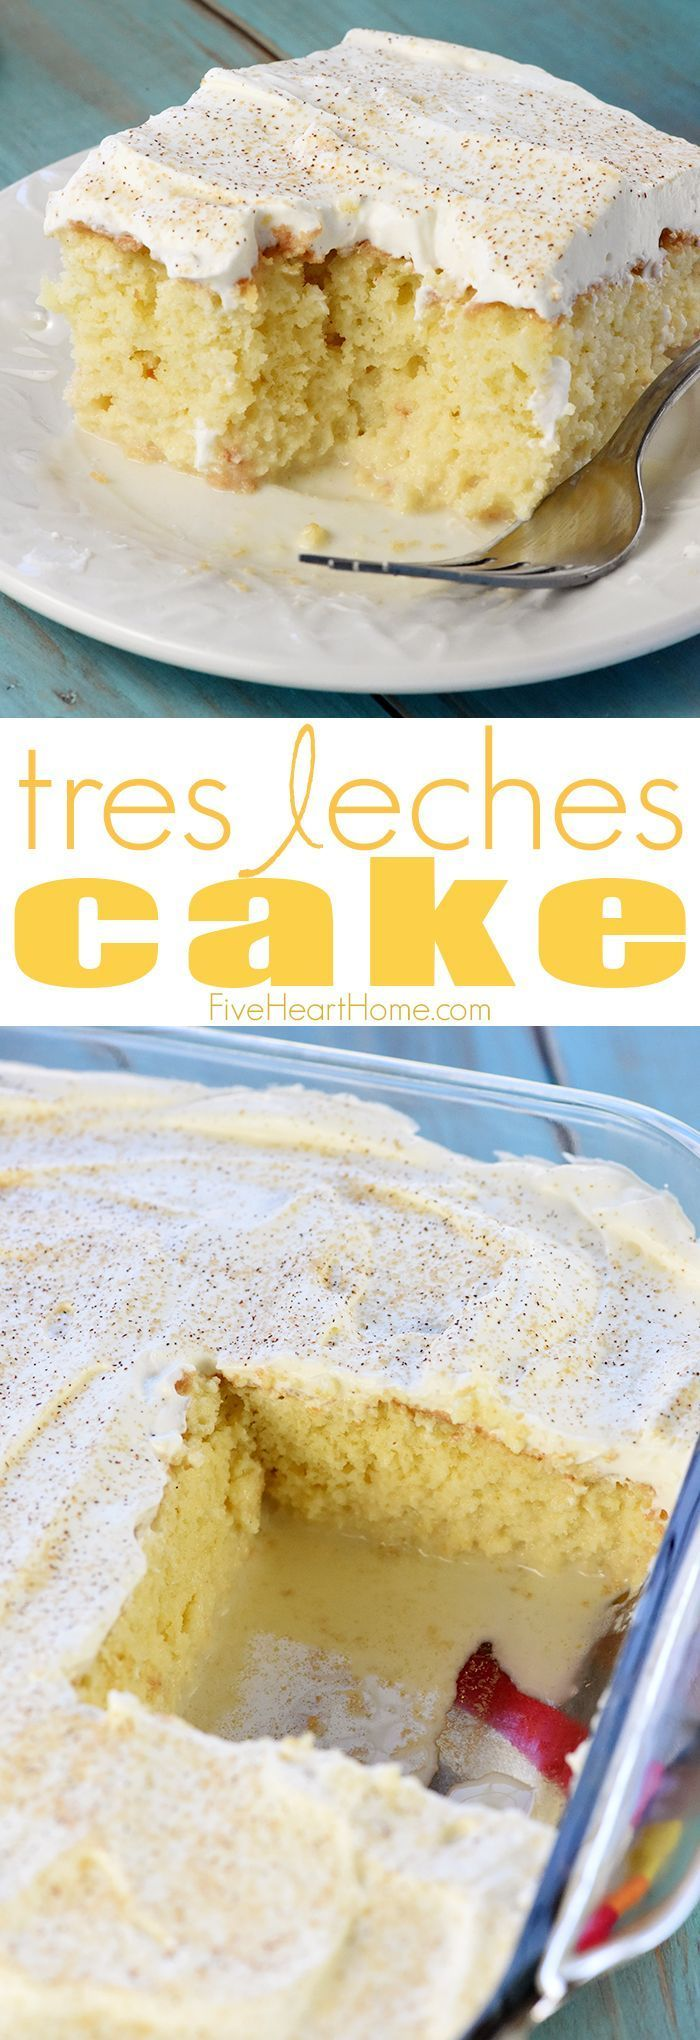 Tres Leches Cake ~ soaked with three types of milk and topped with fresh whipped cream, this sweet, moist, decadent dessert is perfect for celebrating Cinco de Mayo! | http://FiveHeartHome.com